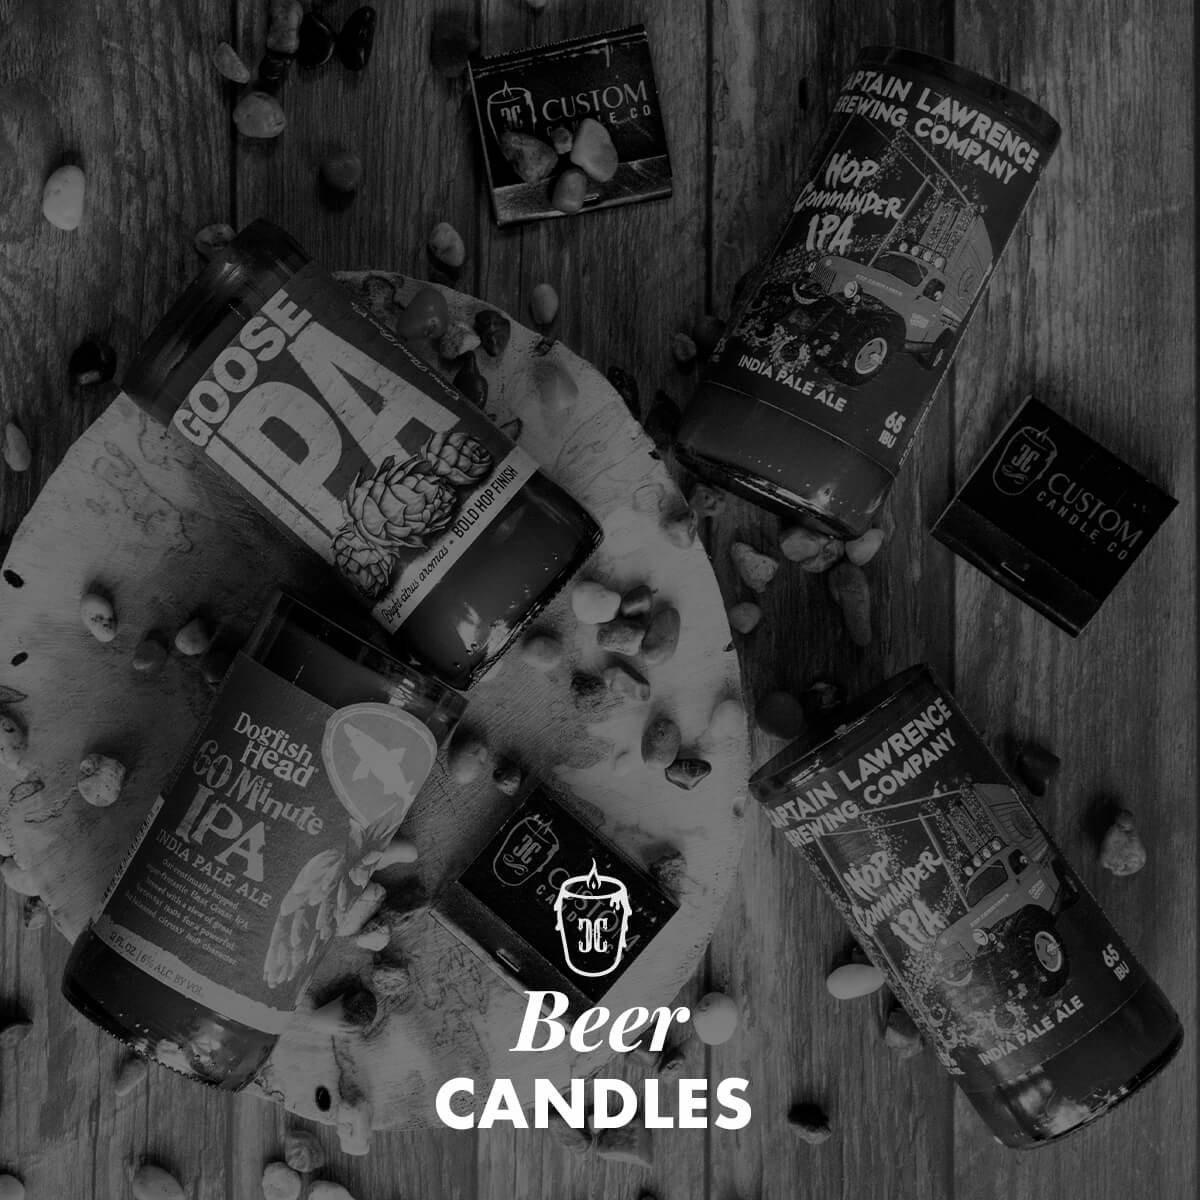 beer-candles-customcandleco-1